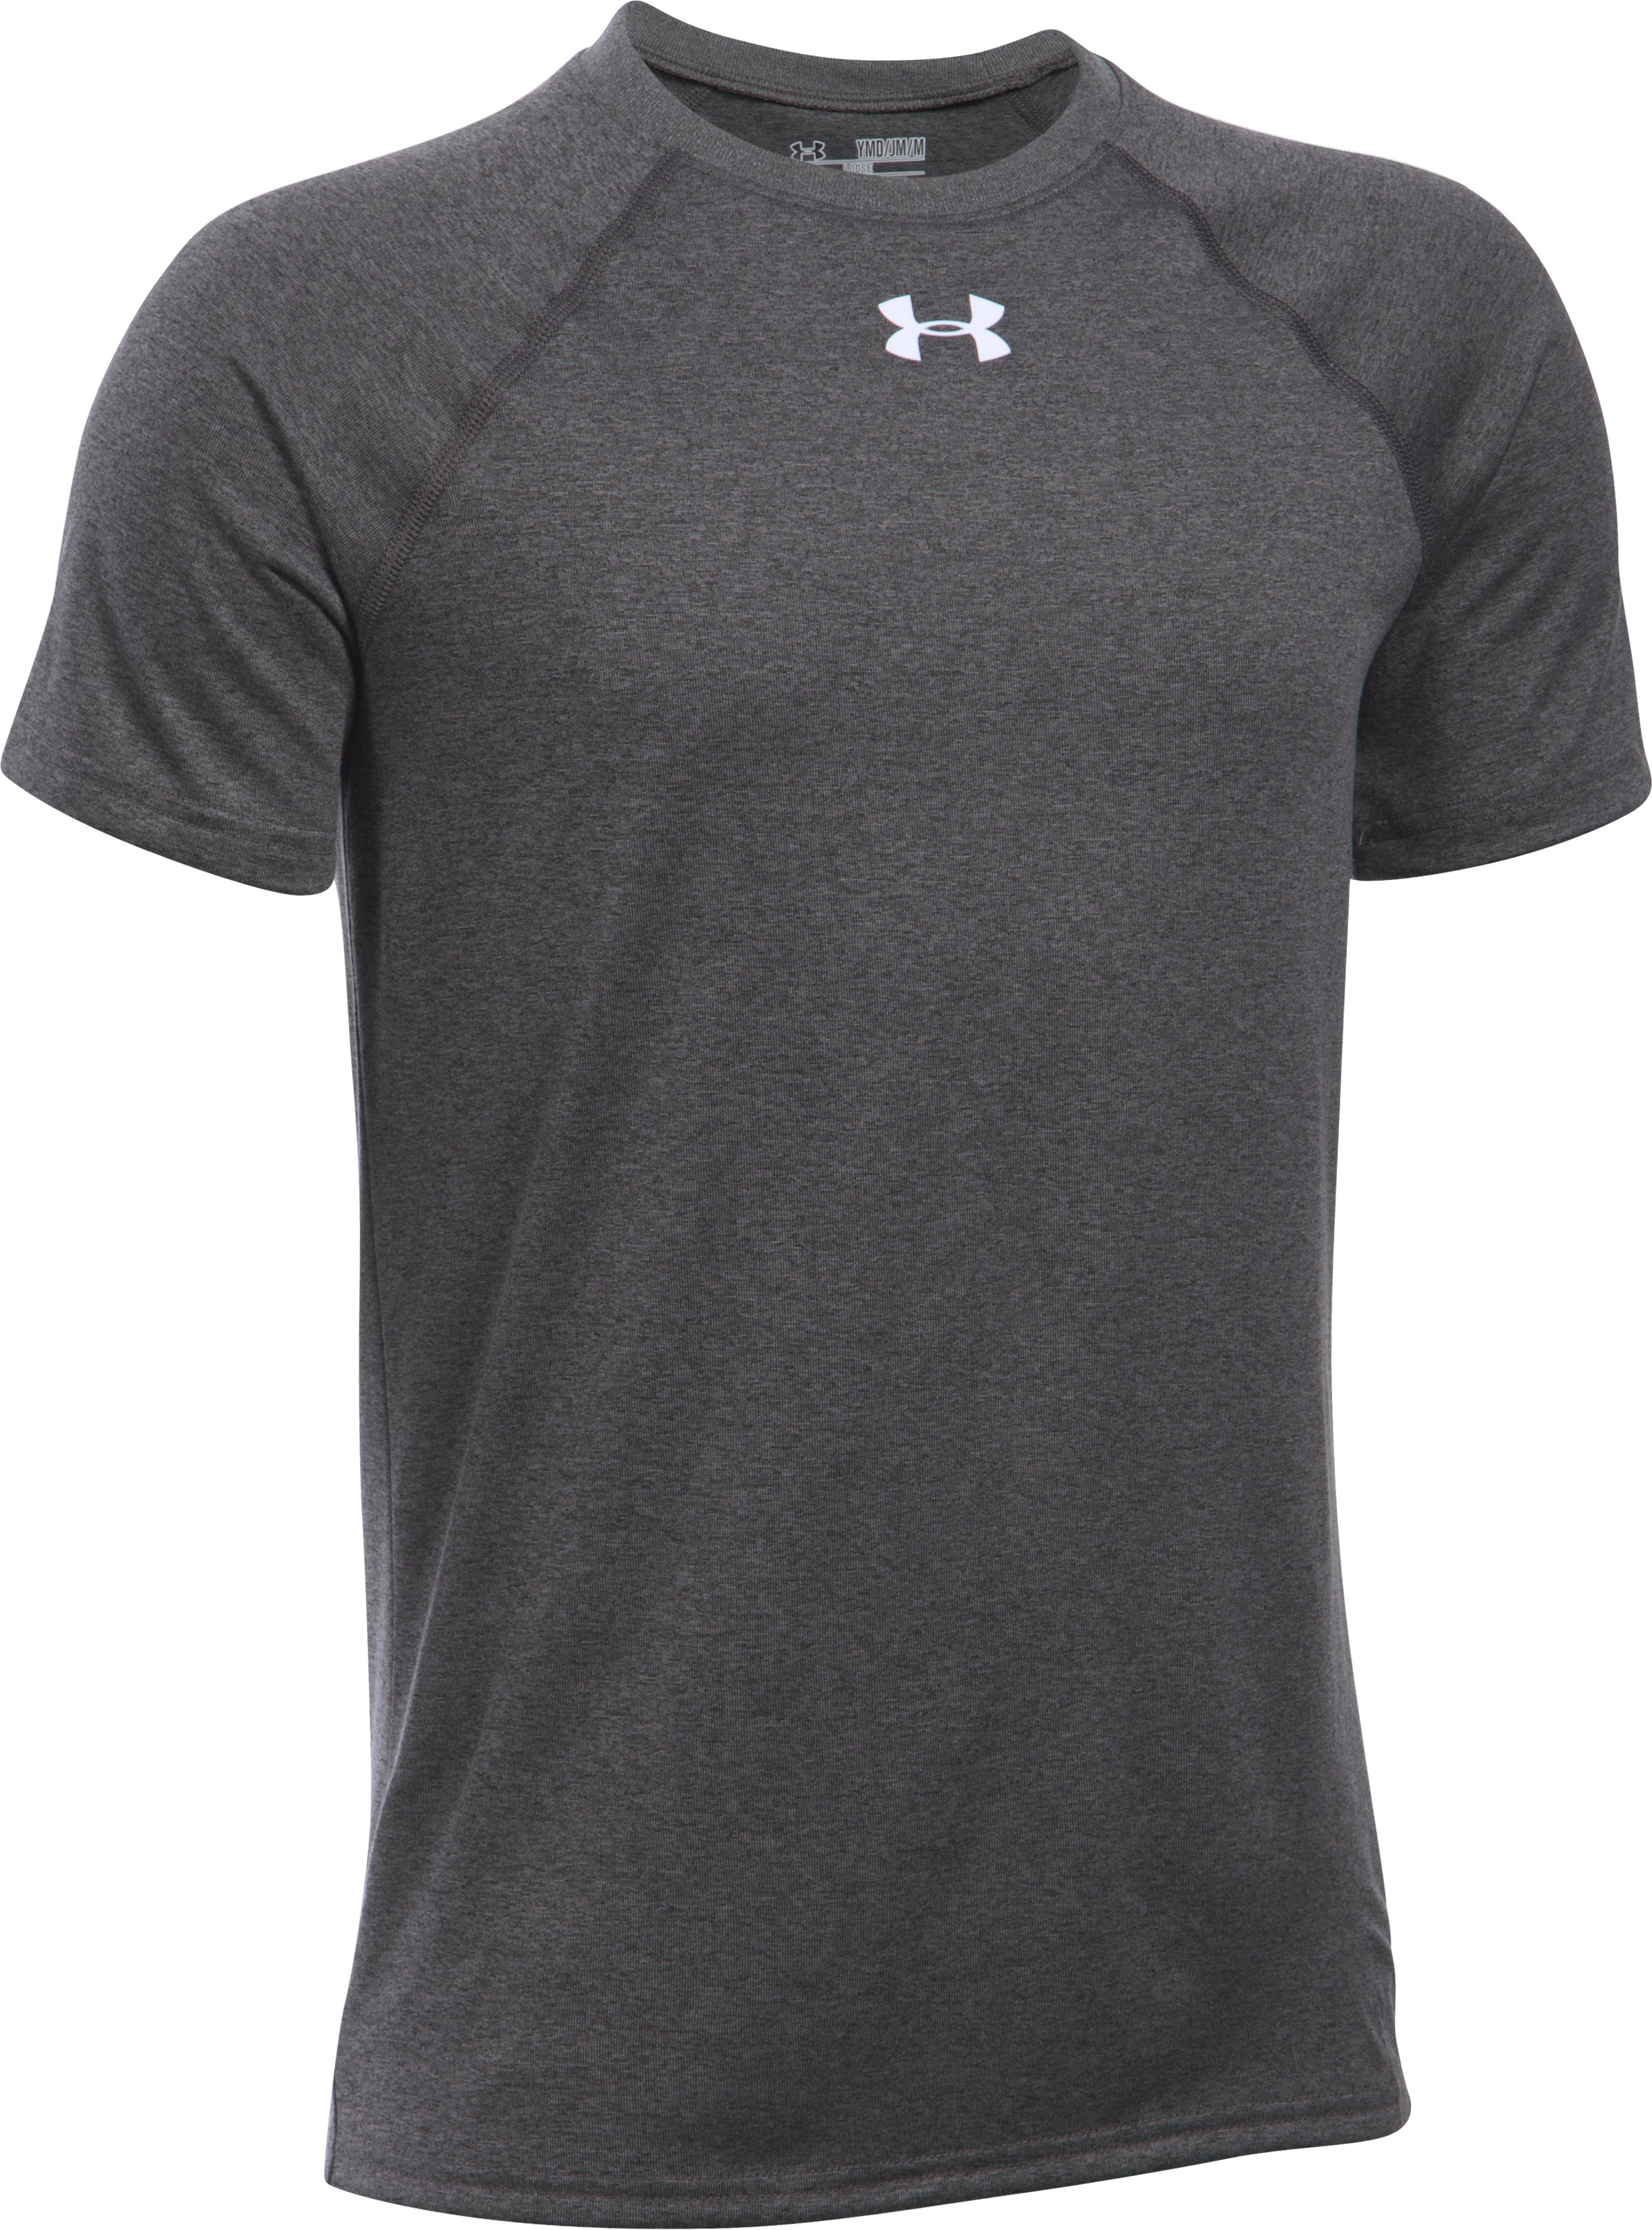 Boys' UA Locker Short Sleeve T-Shirt, Carbon Heather